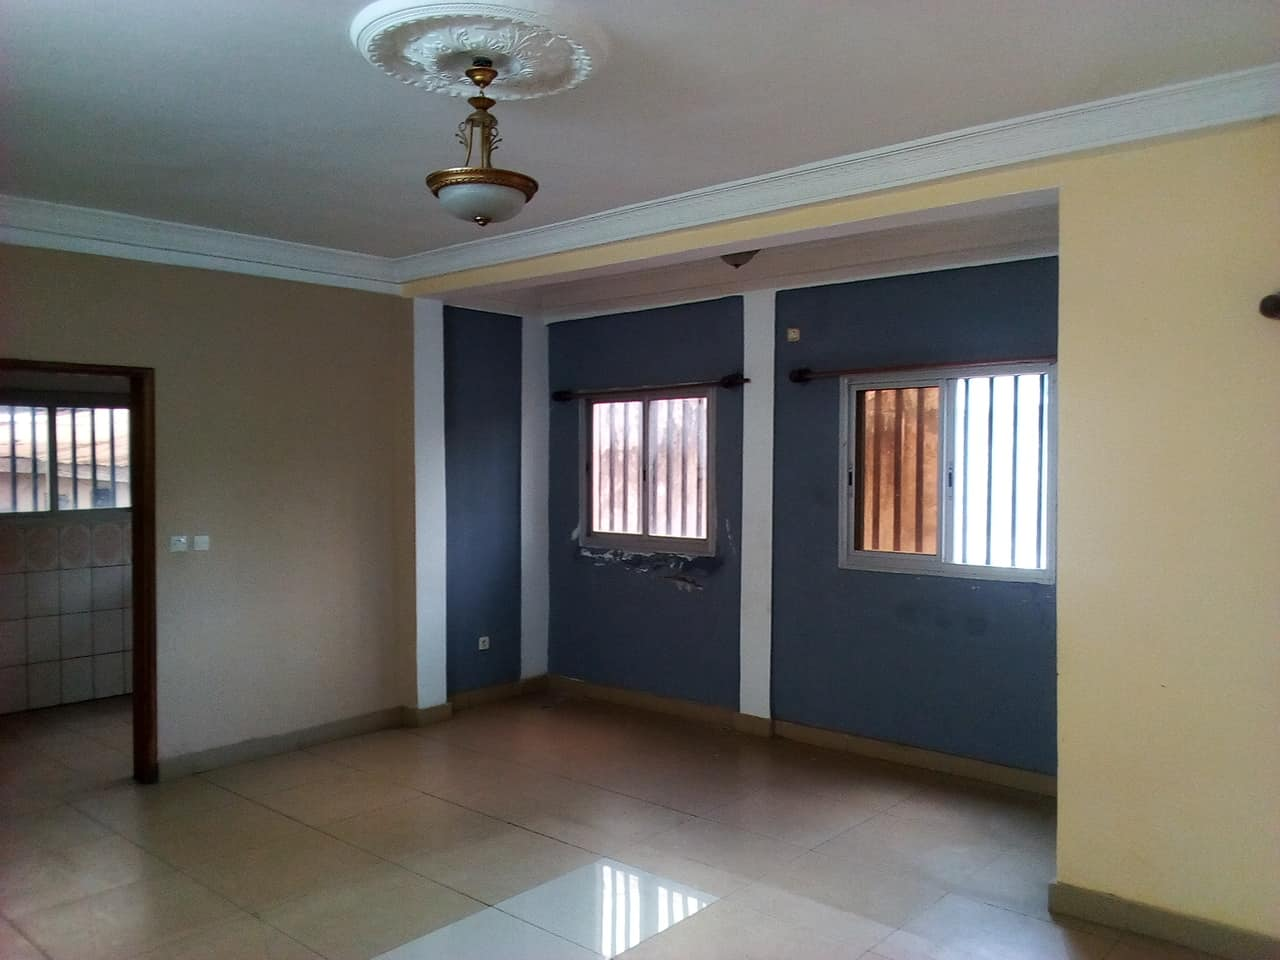 Apartment to rent - Yaoundé, Mballa II, regie - 1 living room(s), 2 bedroom(s), 2 bathroom(s) - 175 000 FCFA / month